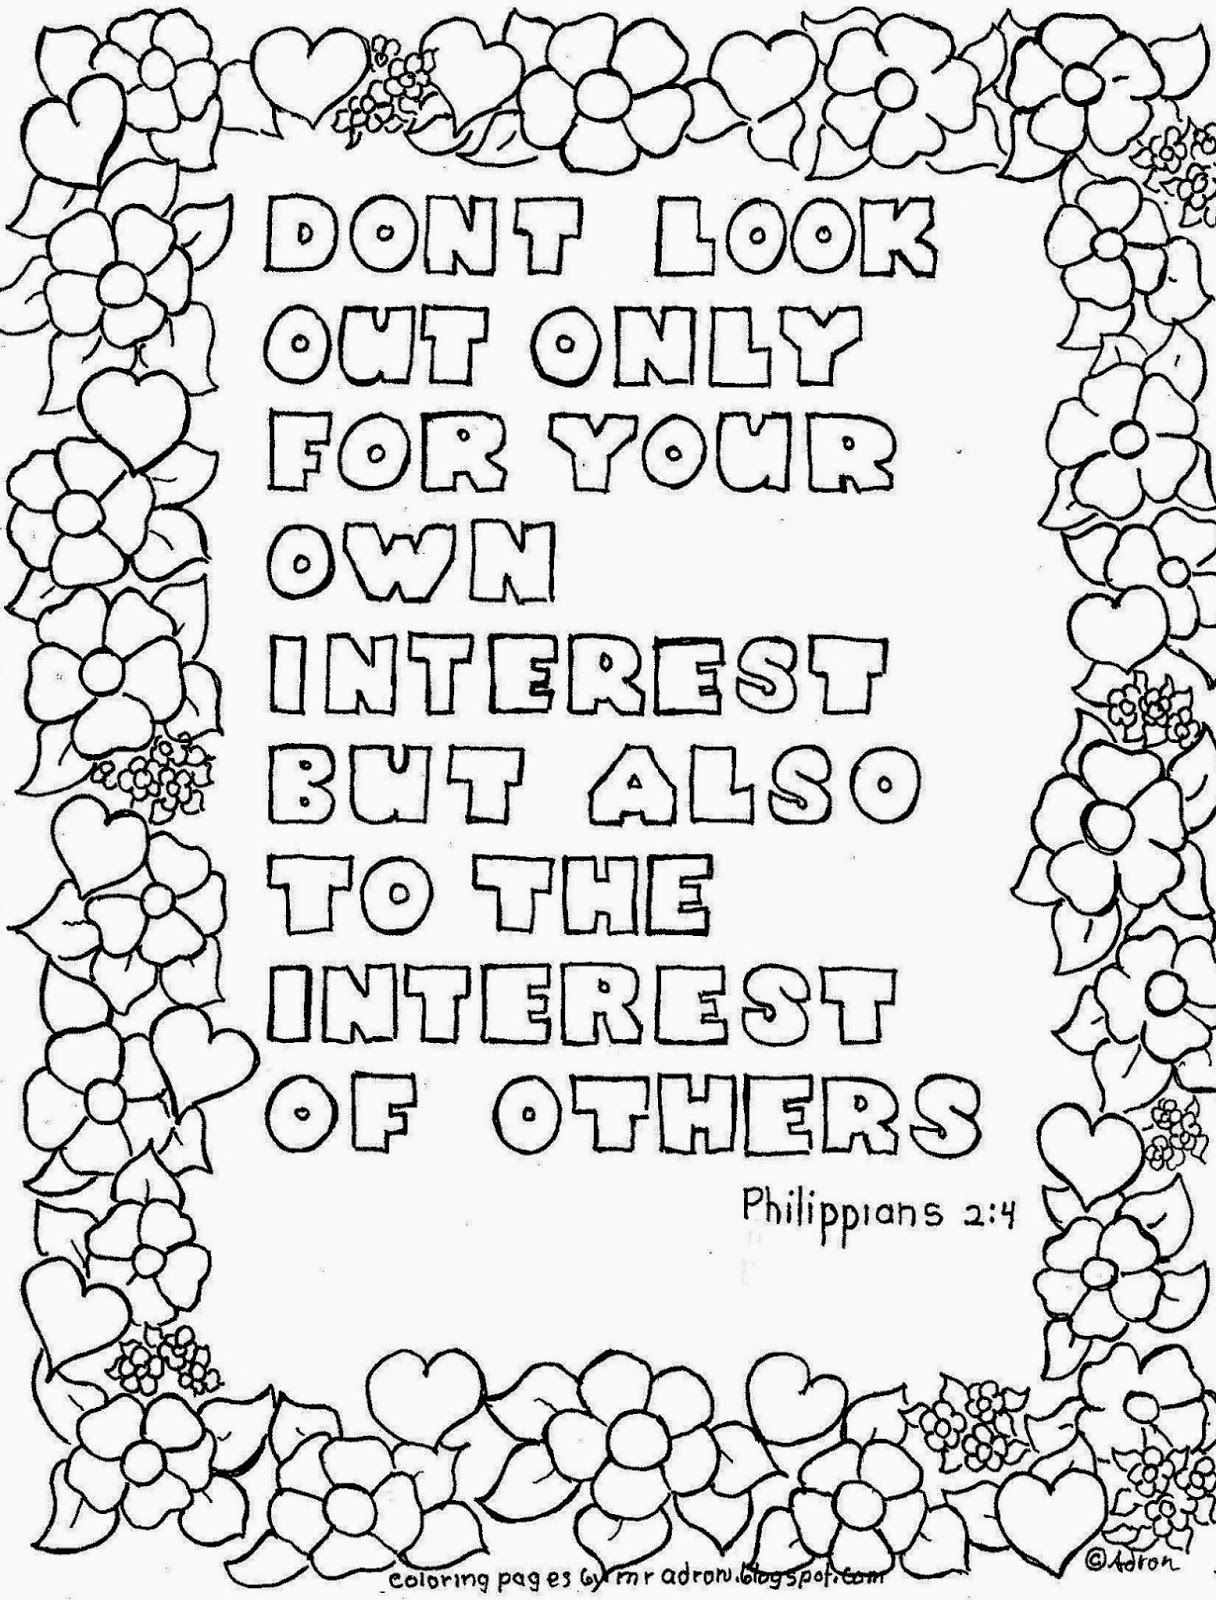 philippians 4 8 coloring page coloring pages for kids by mr adron look to the interest philippians page coloring 4 8